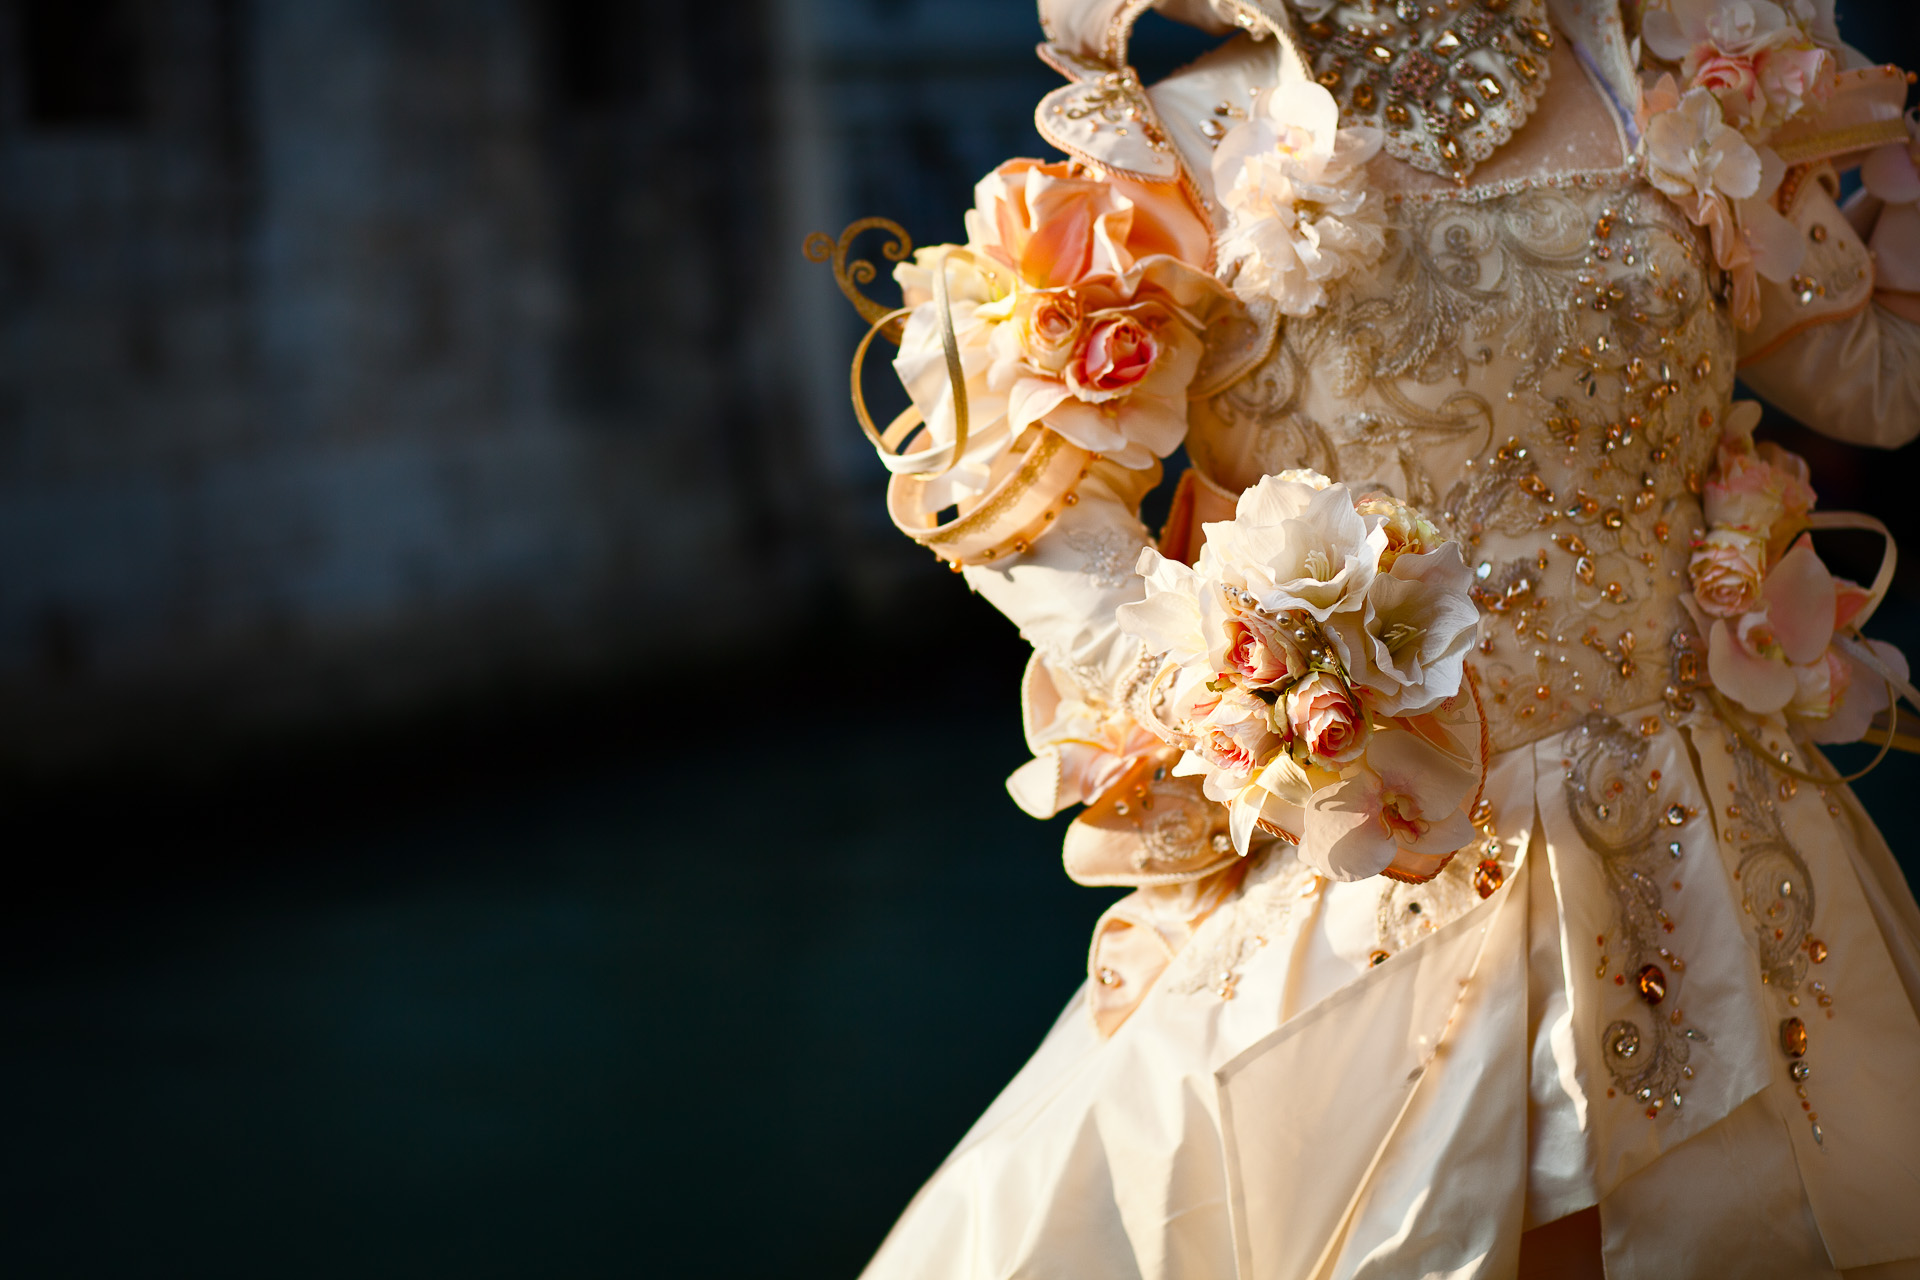 Venice Carnival 2012, woman in costume by a canal